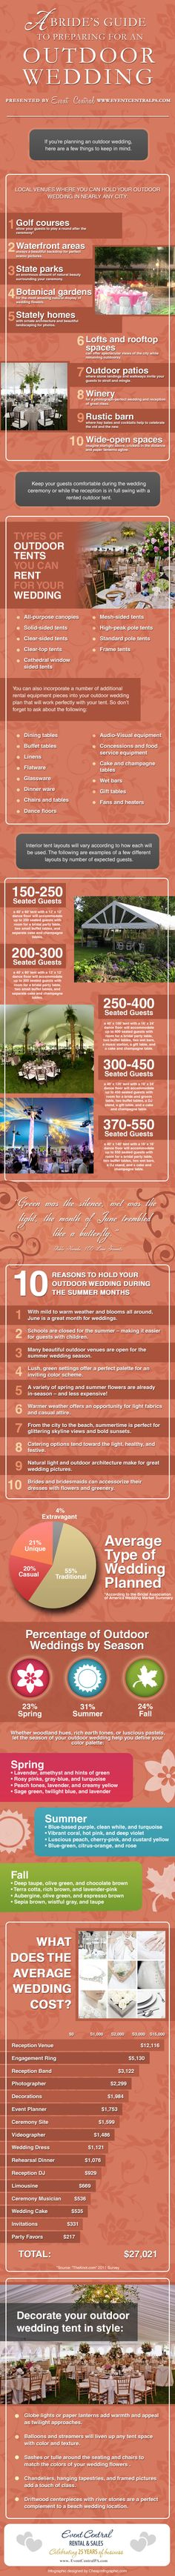 A Bride's Guide to an Outdoor Wedding